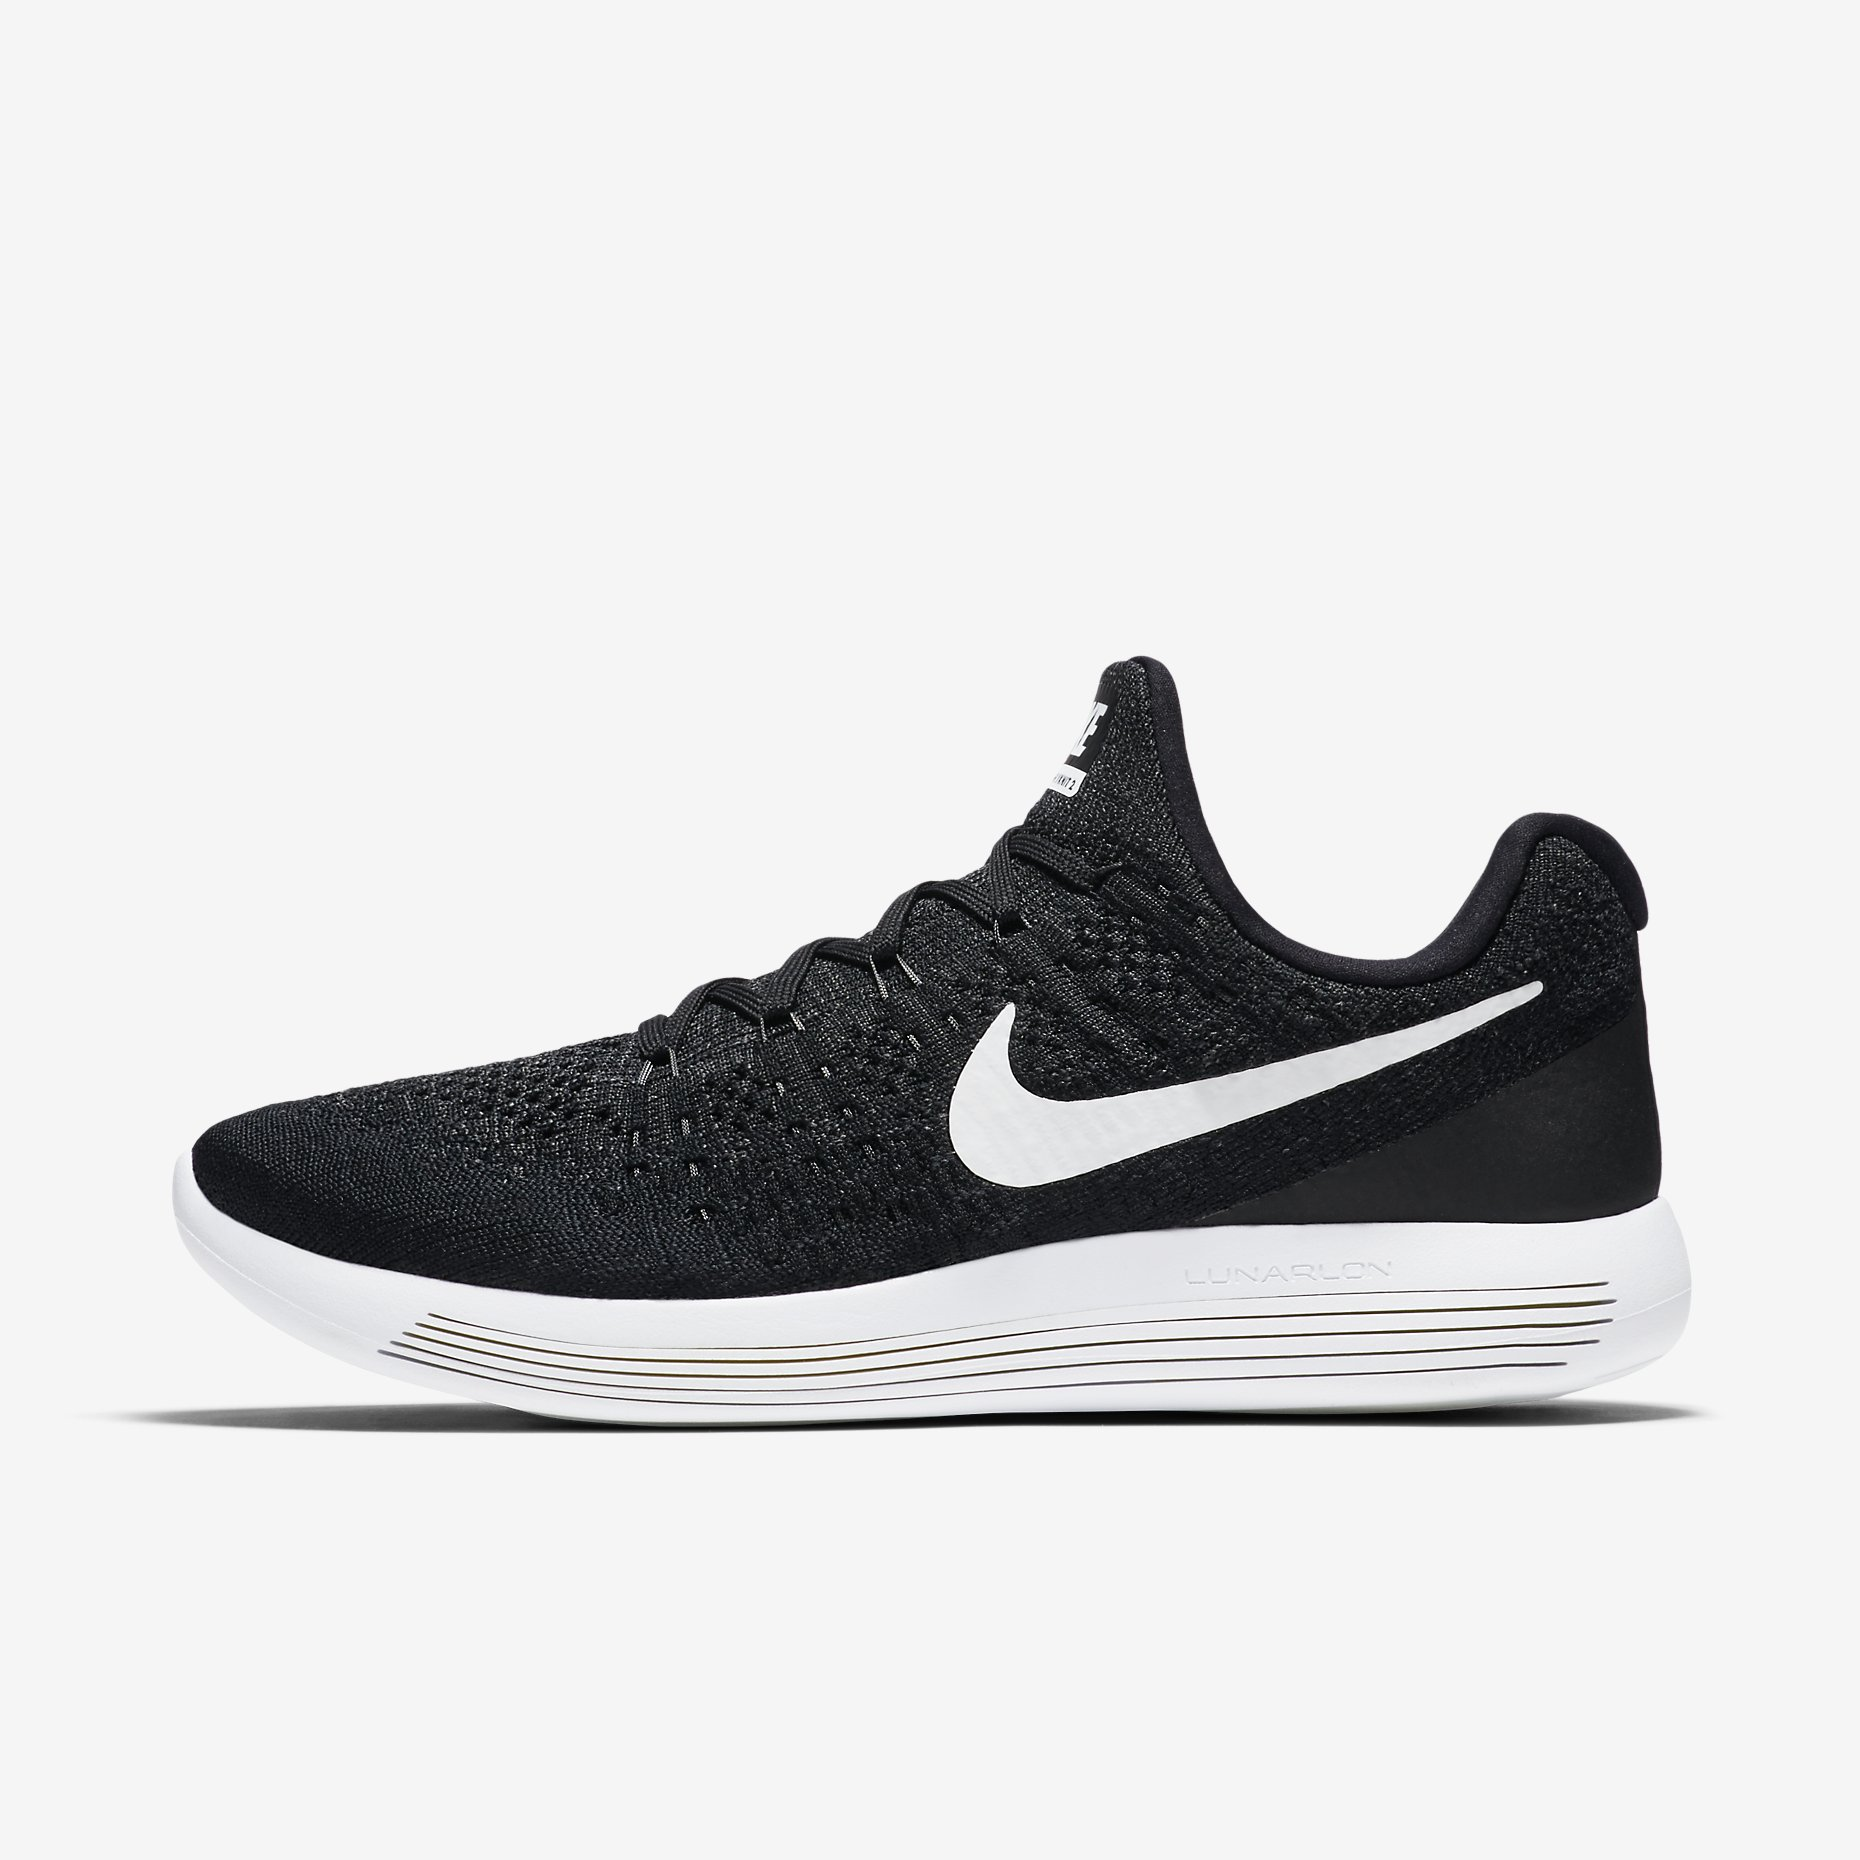 c5b0faeda18fa Nike LunarEpic Low FlyKnit 2 Mens Running Shoes - Alton Sports